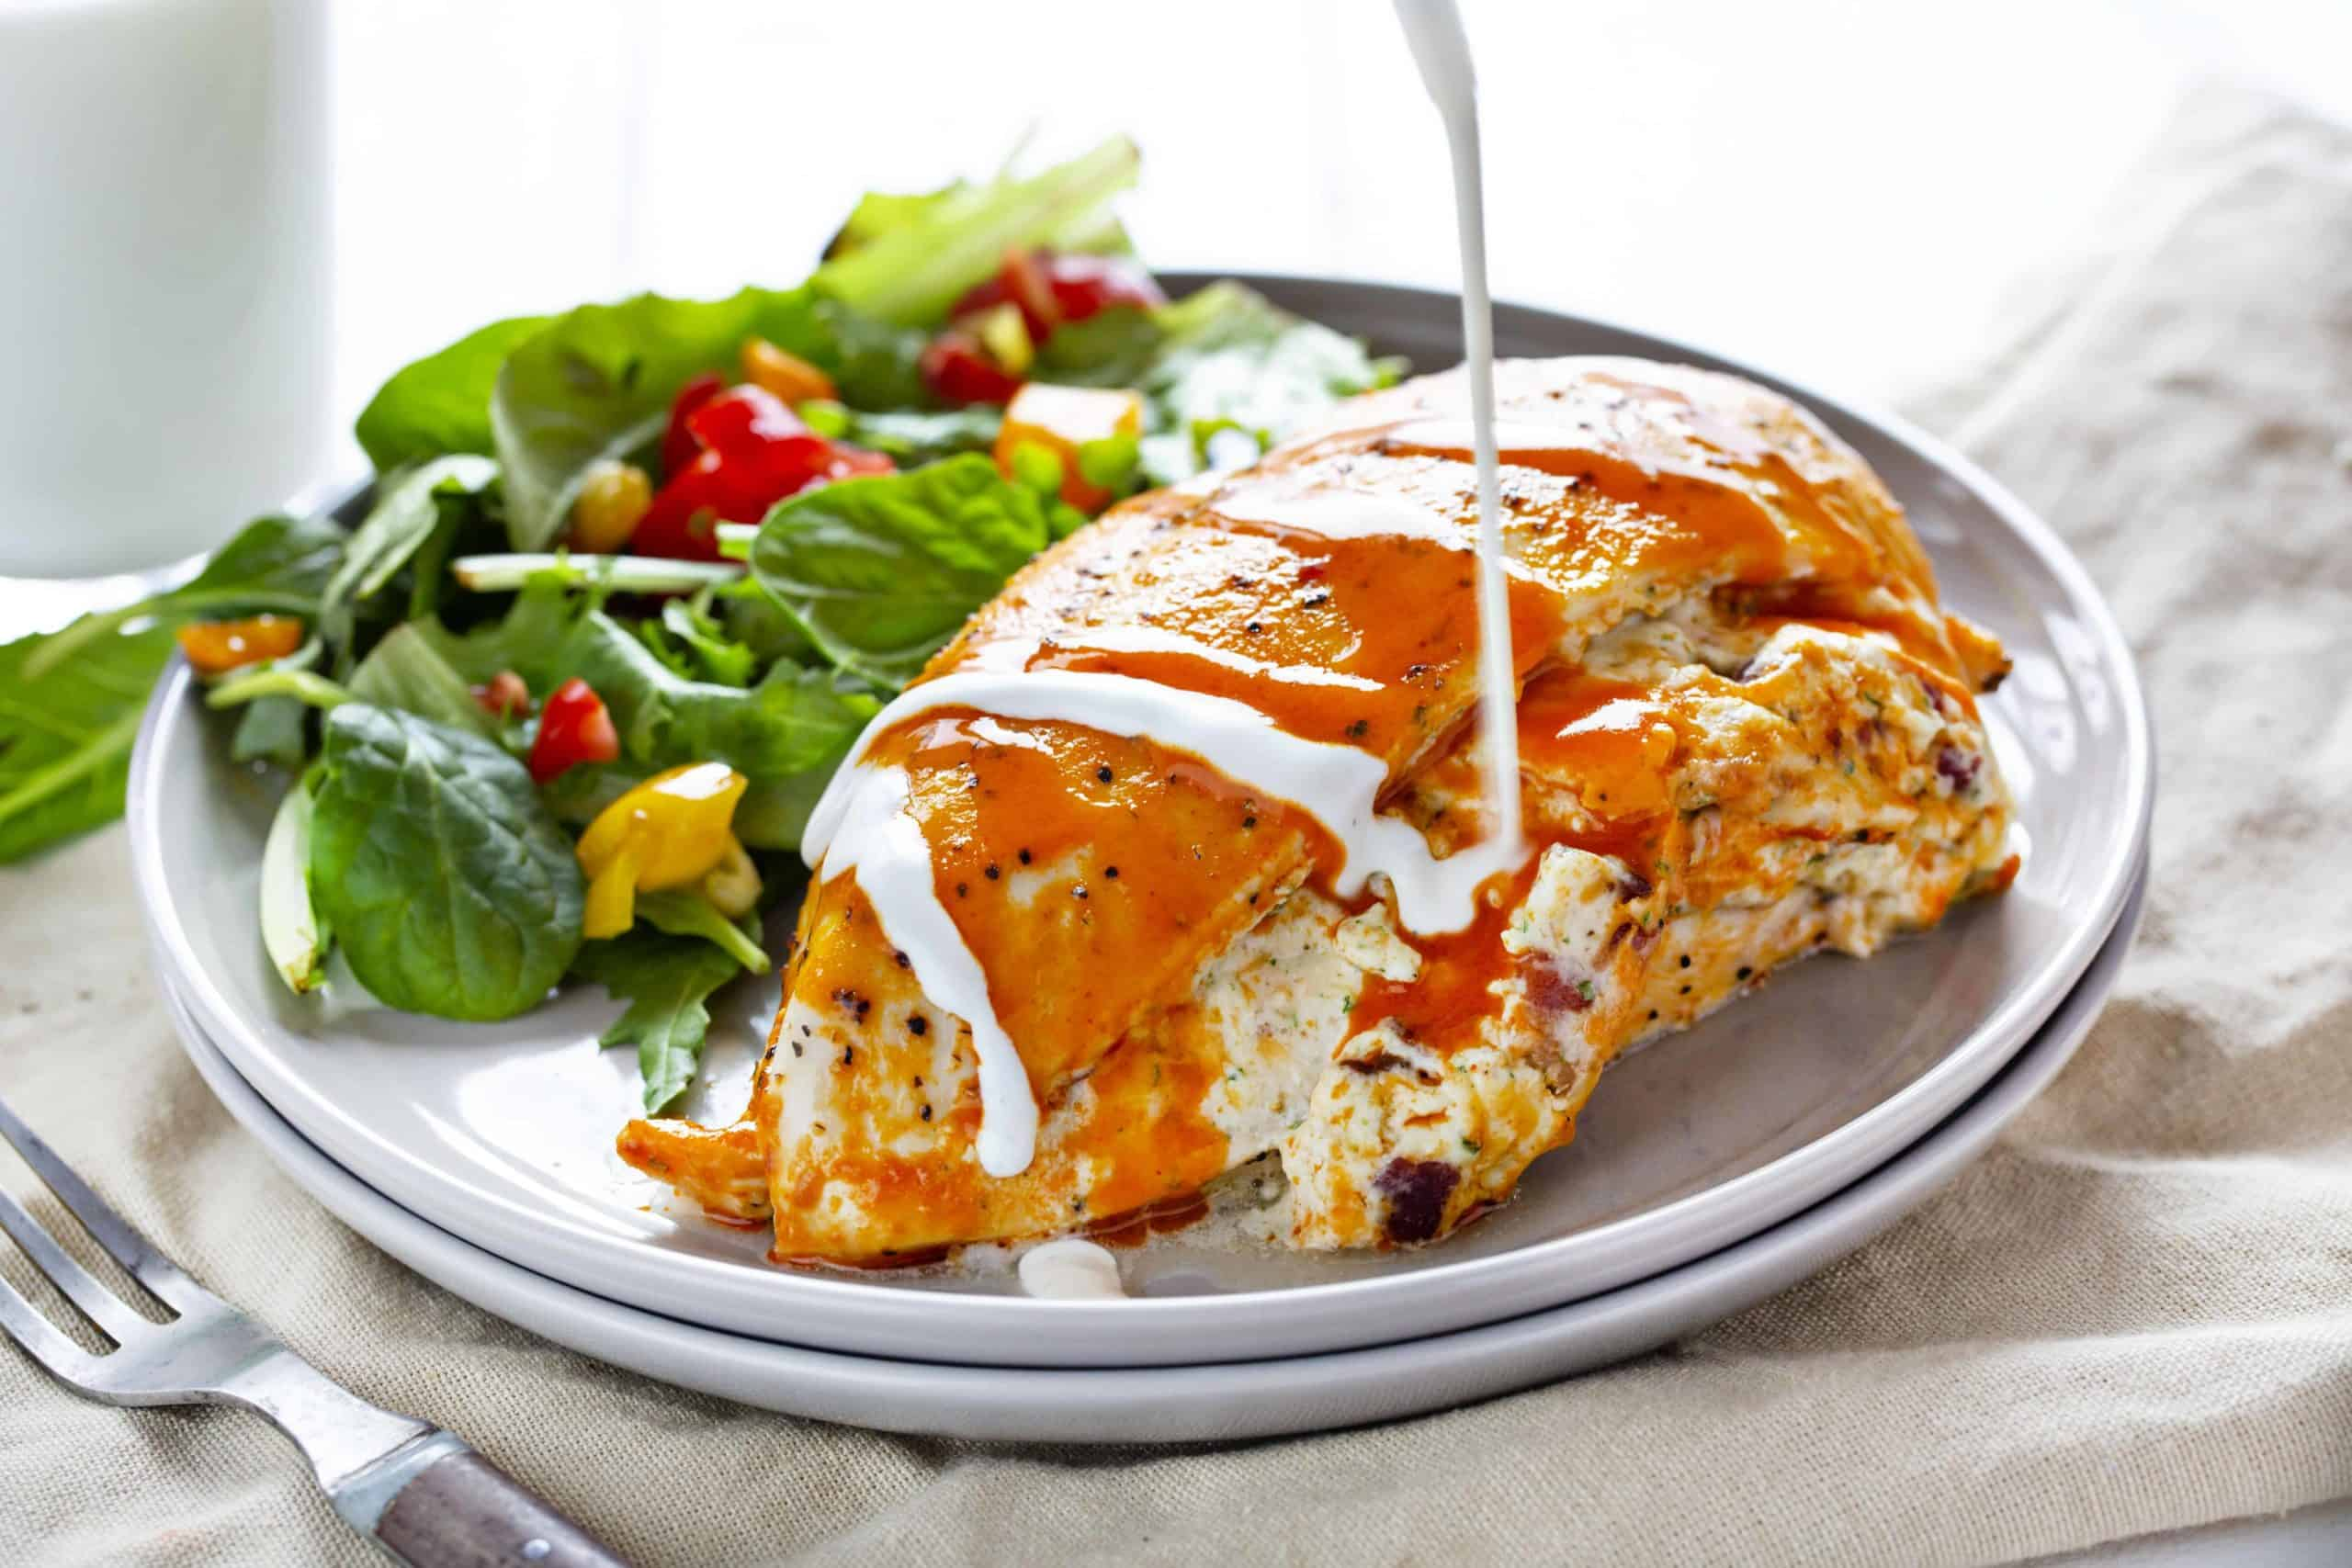 Spicy Buffalo Chicken with Ranch Being Drizzled